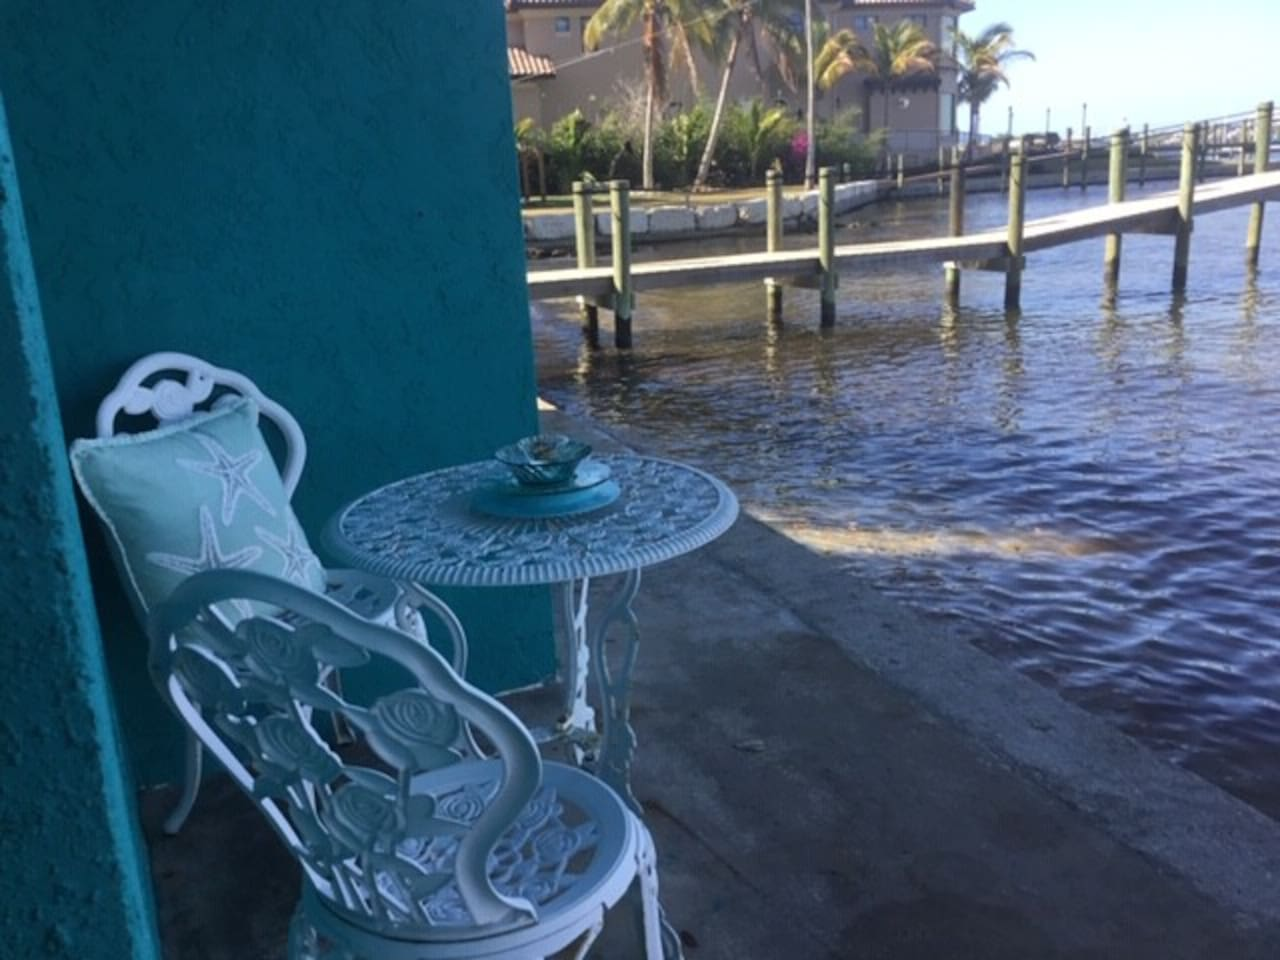 Only 10 minutes from the beaches of Anna Maria Island, relax on your quiet and beautiful deck on the Manatee River. Keep an eye out for manatees and dolphins!